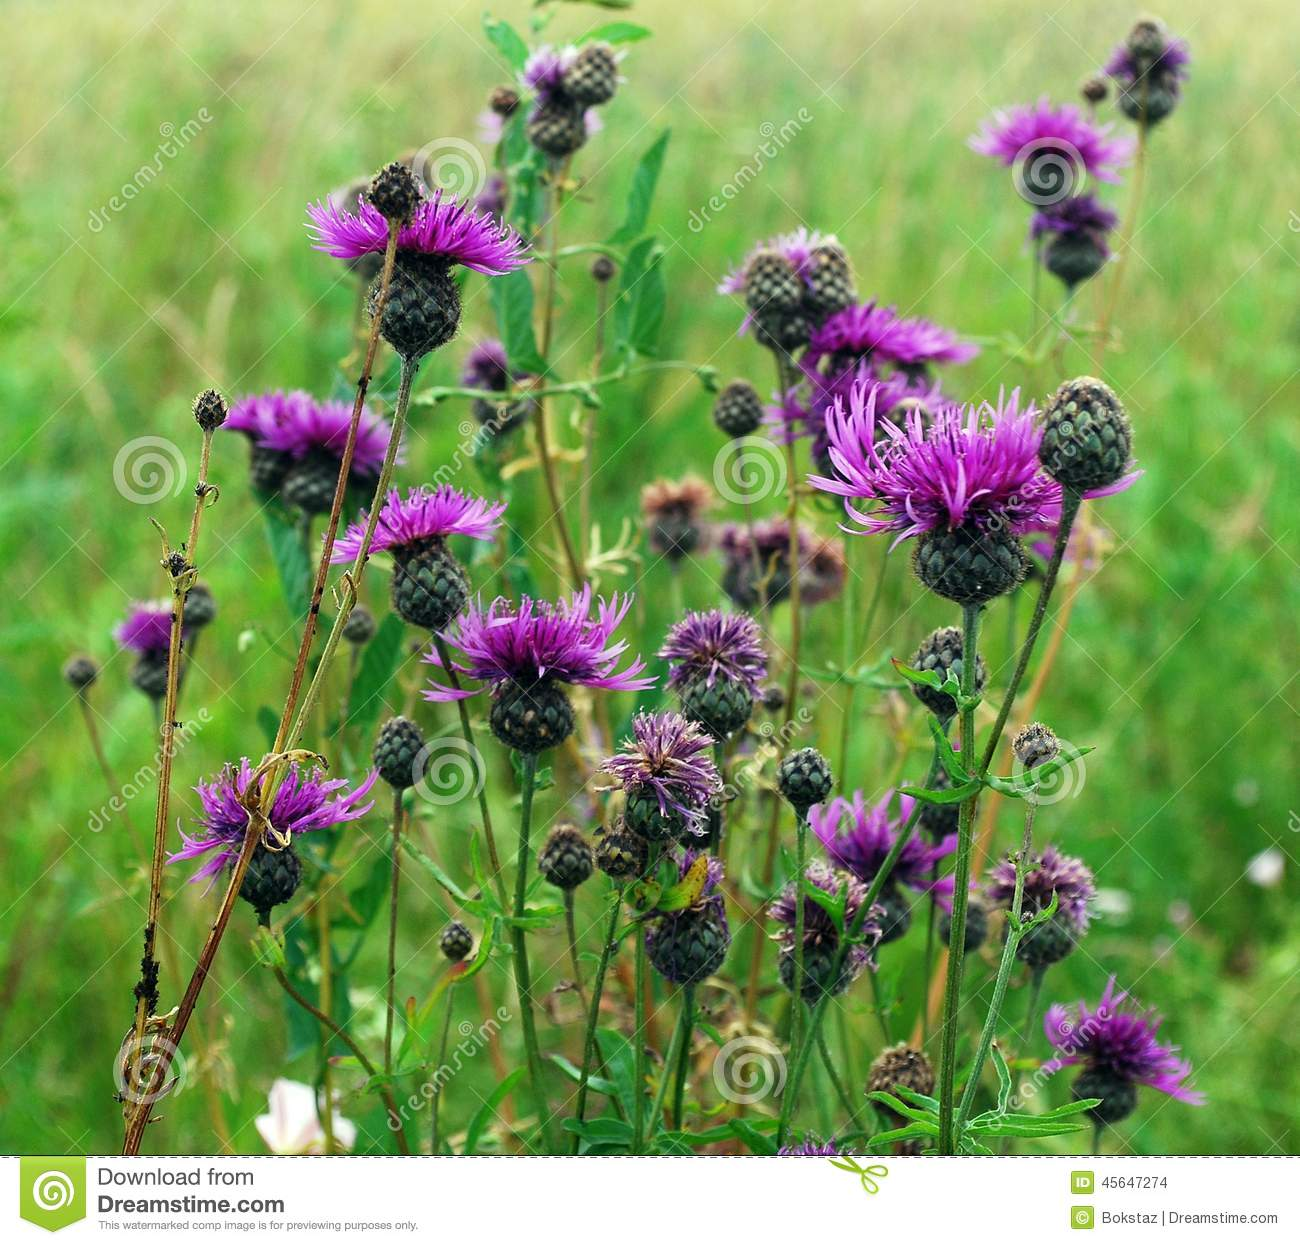 wild purple flowers in the grass stock photo  image, Beautiful flower